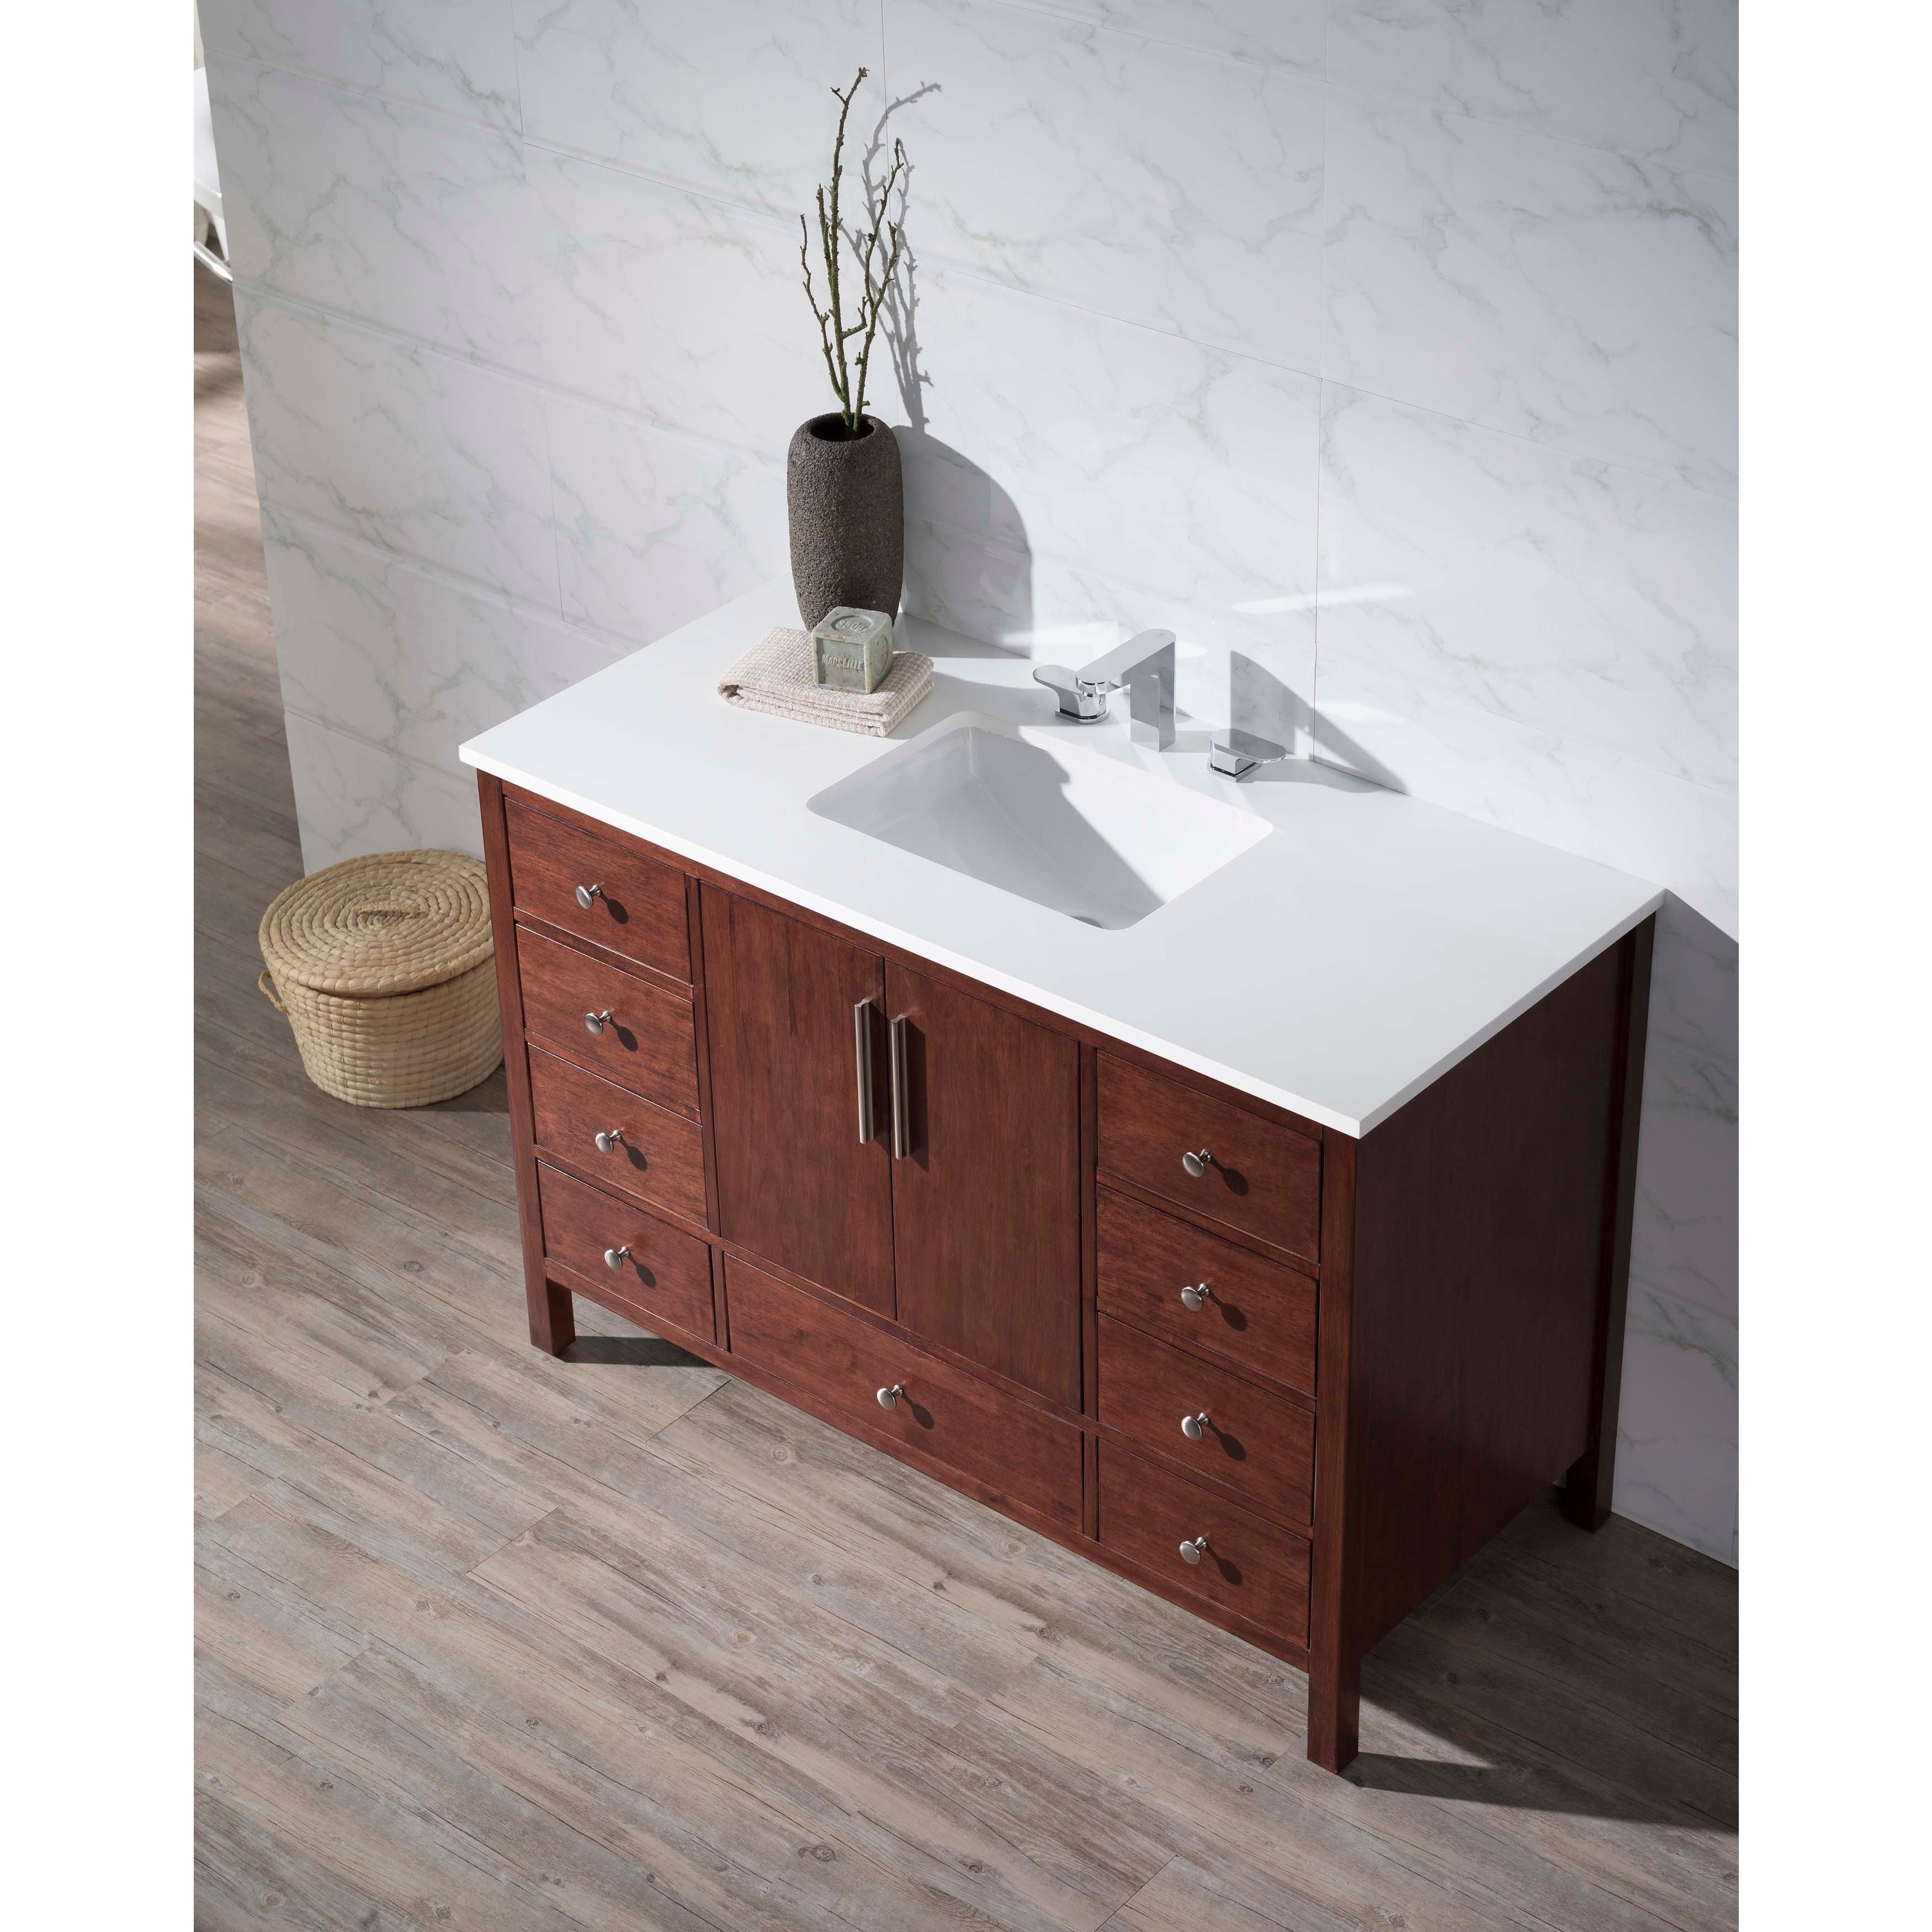 Stufurhome Rockford 49 Inch Single Sink Bathroom Vanity By